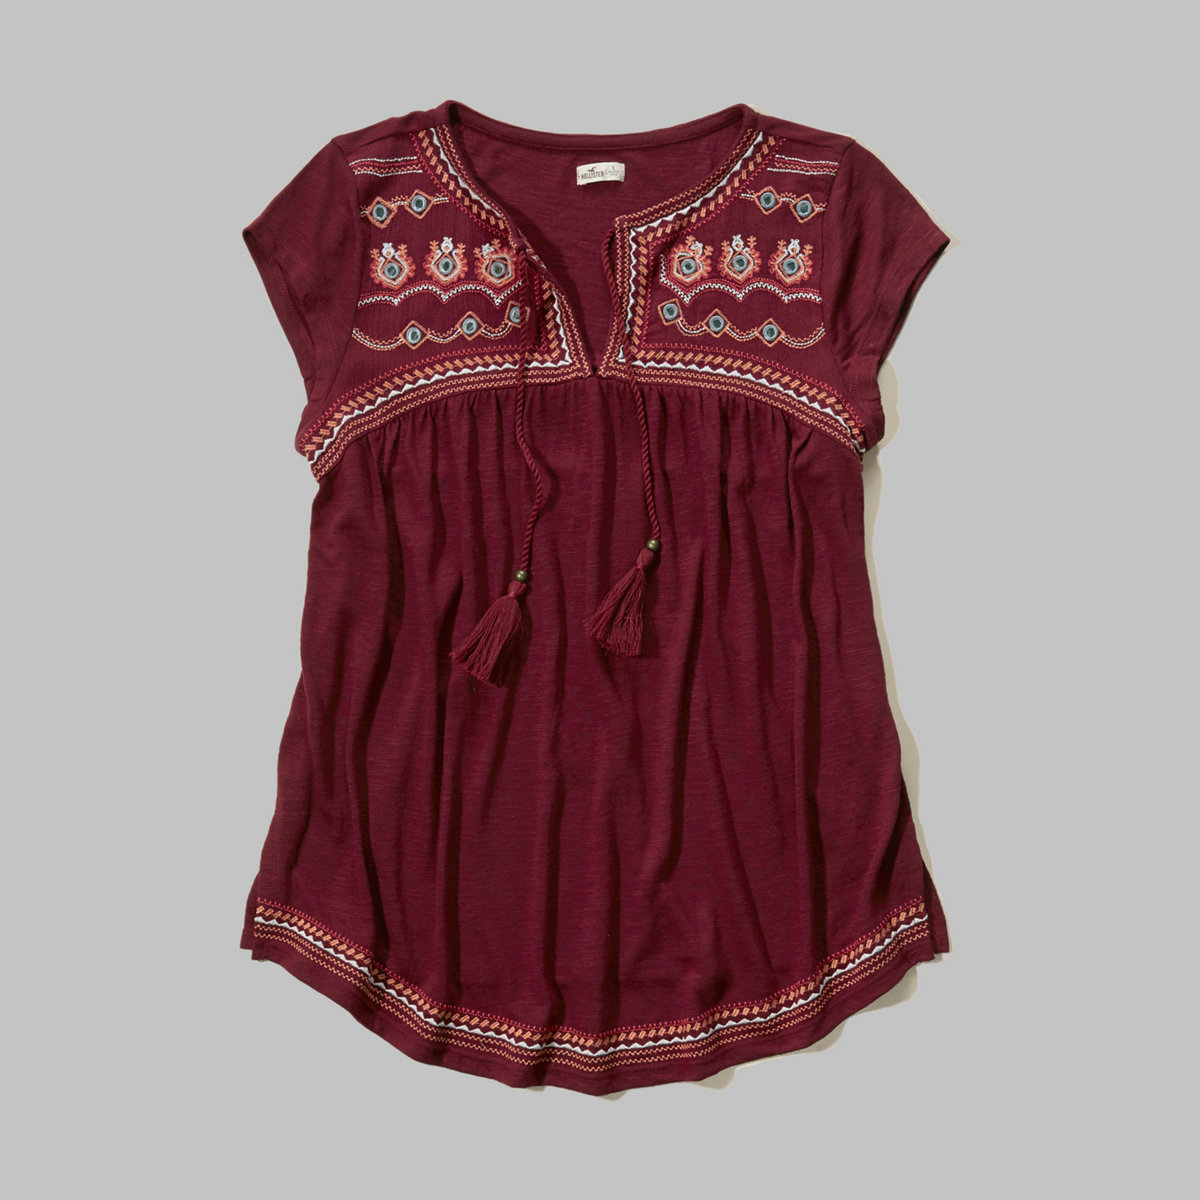 Shine Embroidery Cap-Sleeve Peasant Top